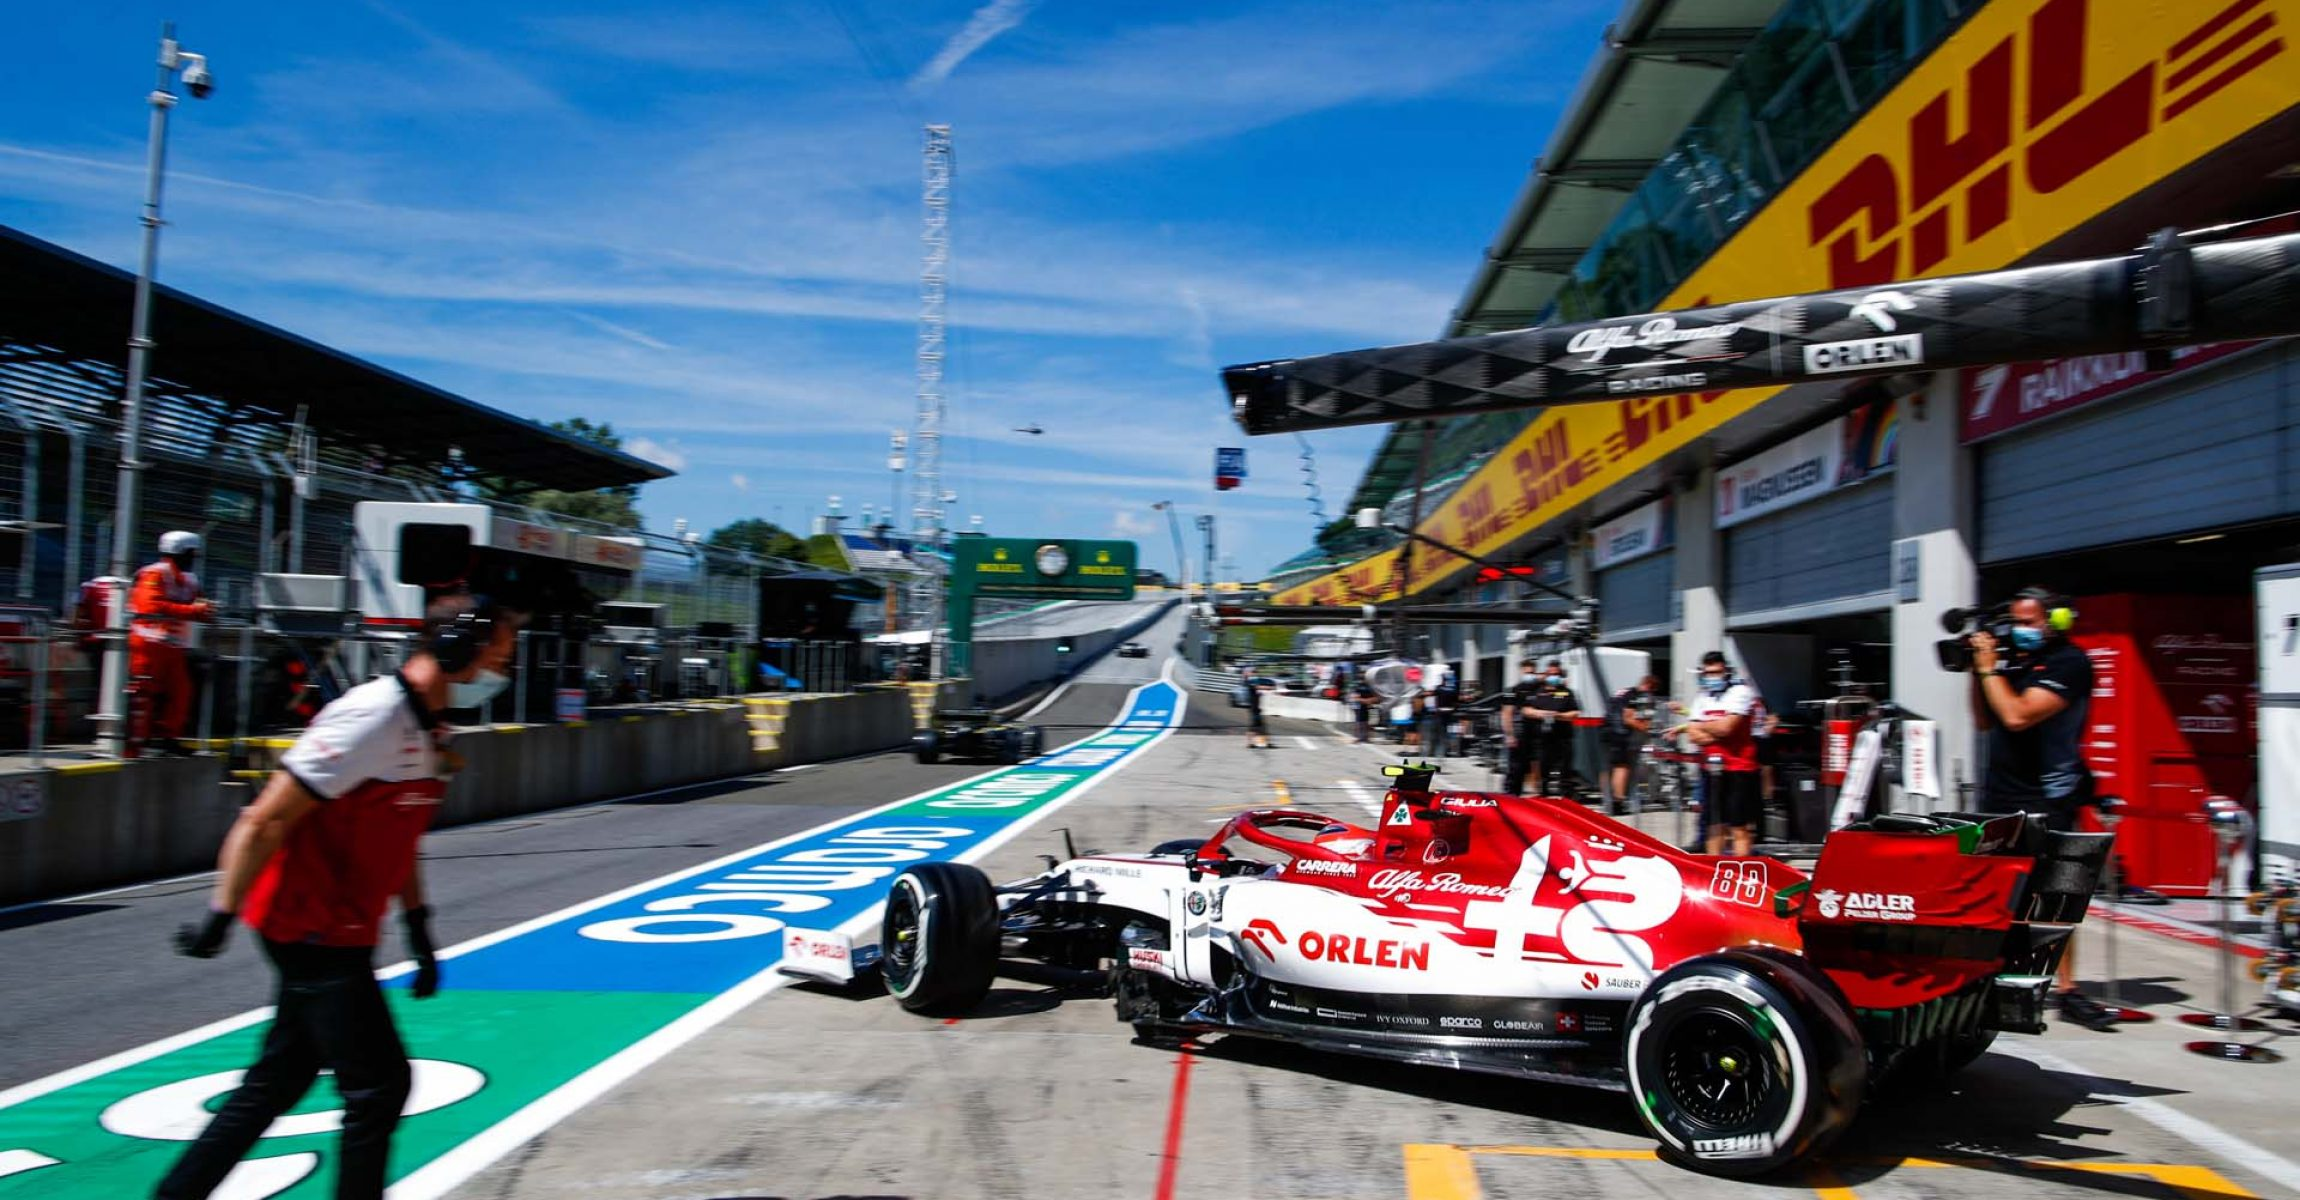 88 KUBICA Robert (pol), Alfa Romeo Racing C39, action during the Formula 1 Pirelli Grosser Preis der Steiermark 2020, Styrian Grand Prix from July 10 to 12, 2020 on the Red Bull Ring, in Spielberg, Austria - Photo Florent Gooden / DPPI